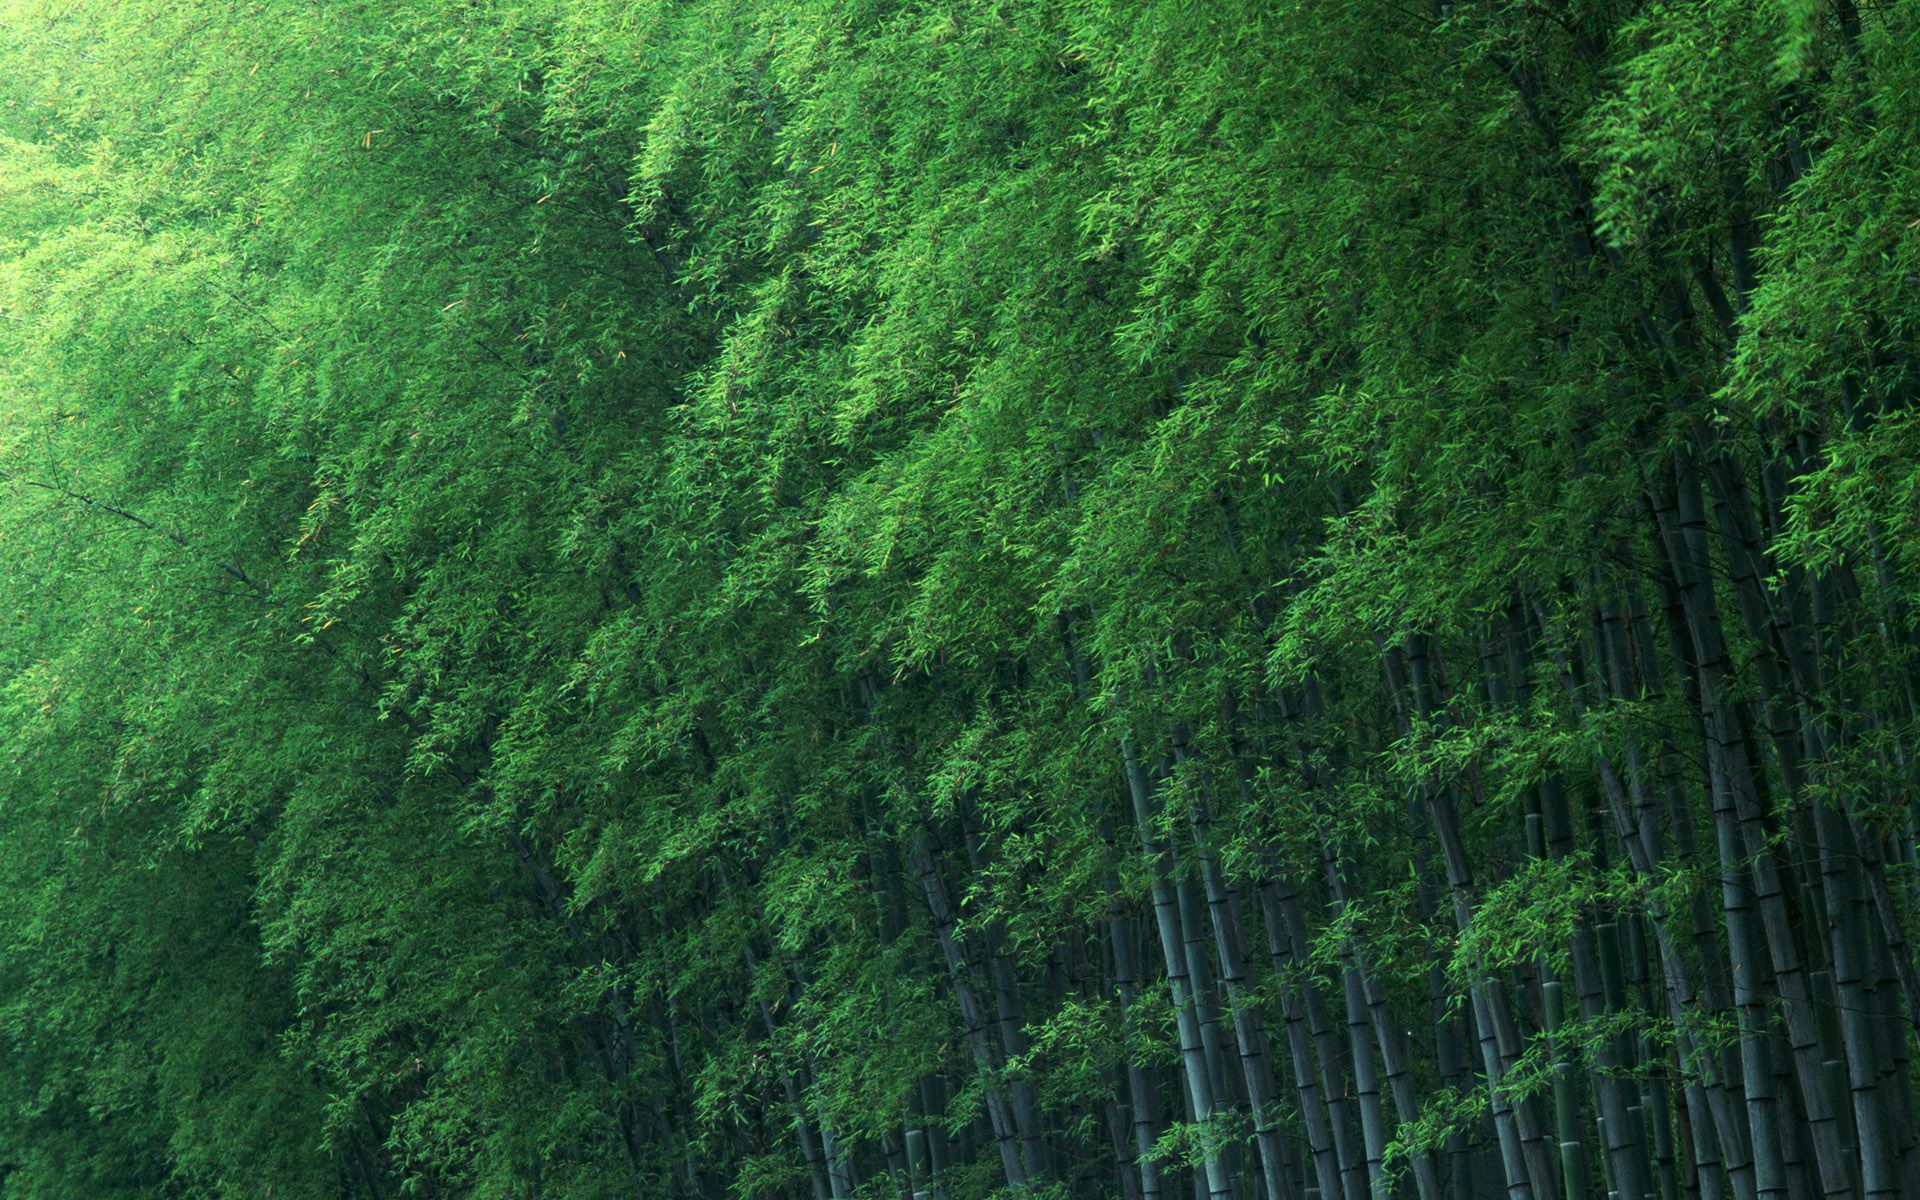 Download Free Wallpapers Most Viewed High Quality Backgrounds Bamboo Wallpaper Bamboo Background Bamboo Forest